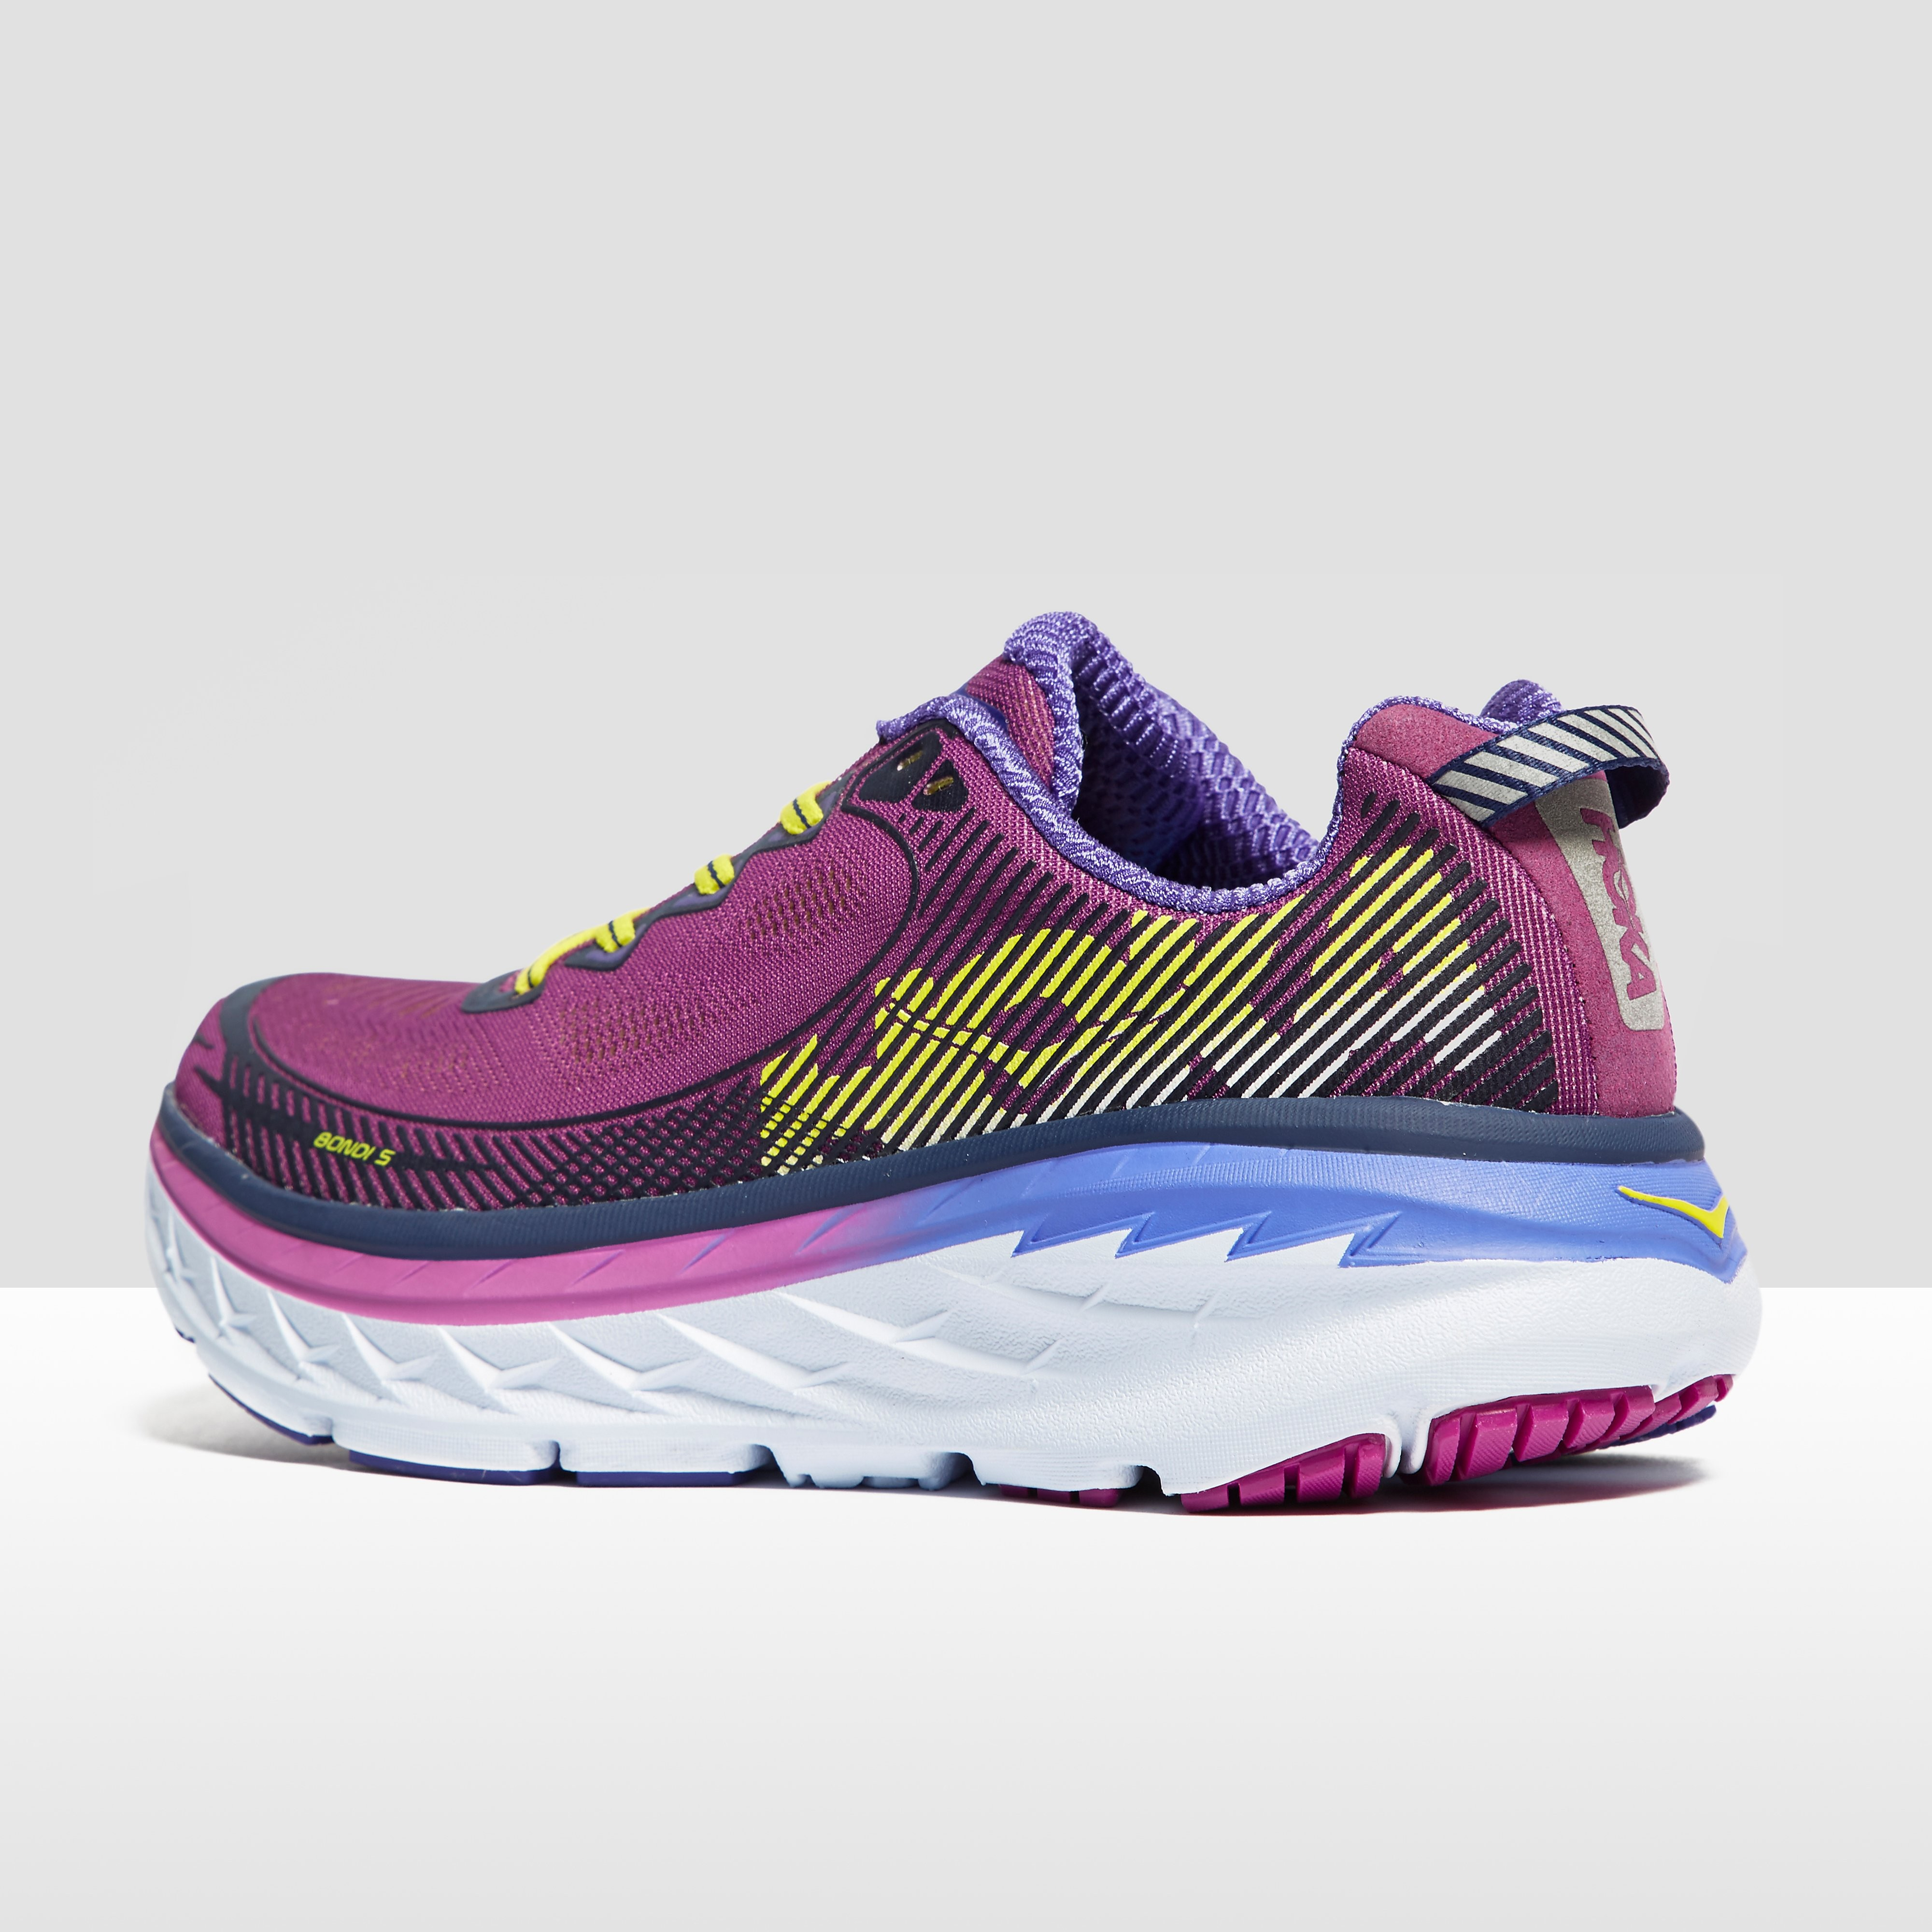 Hoka One One Women's Running Shoe